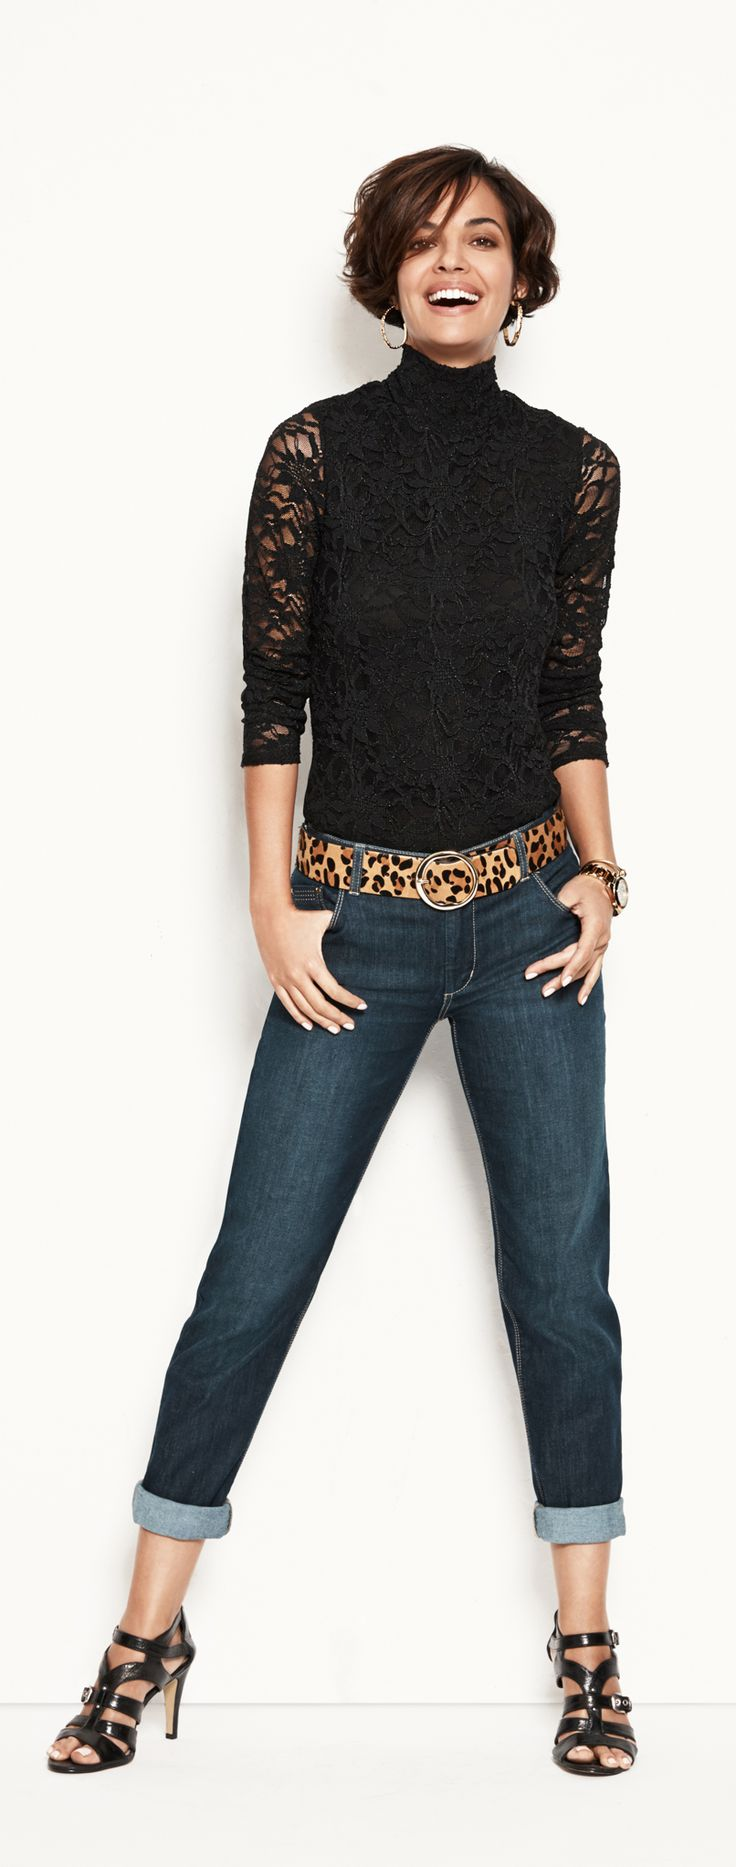 Lace Turtleneck.   Wear it now, with boyfriend jeans and a little leopard. #chicossweeps~ fantastic look!